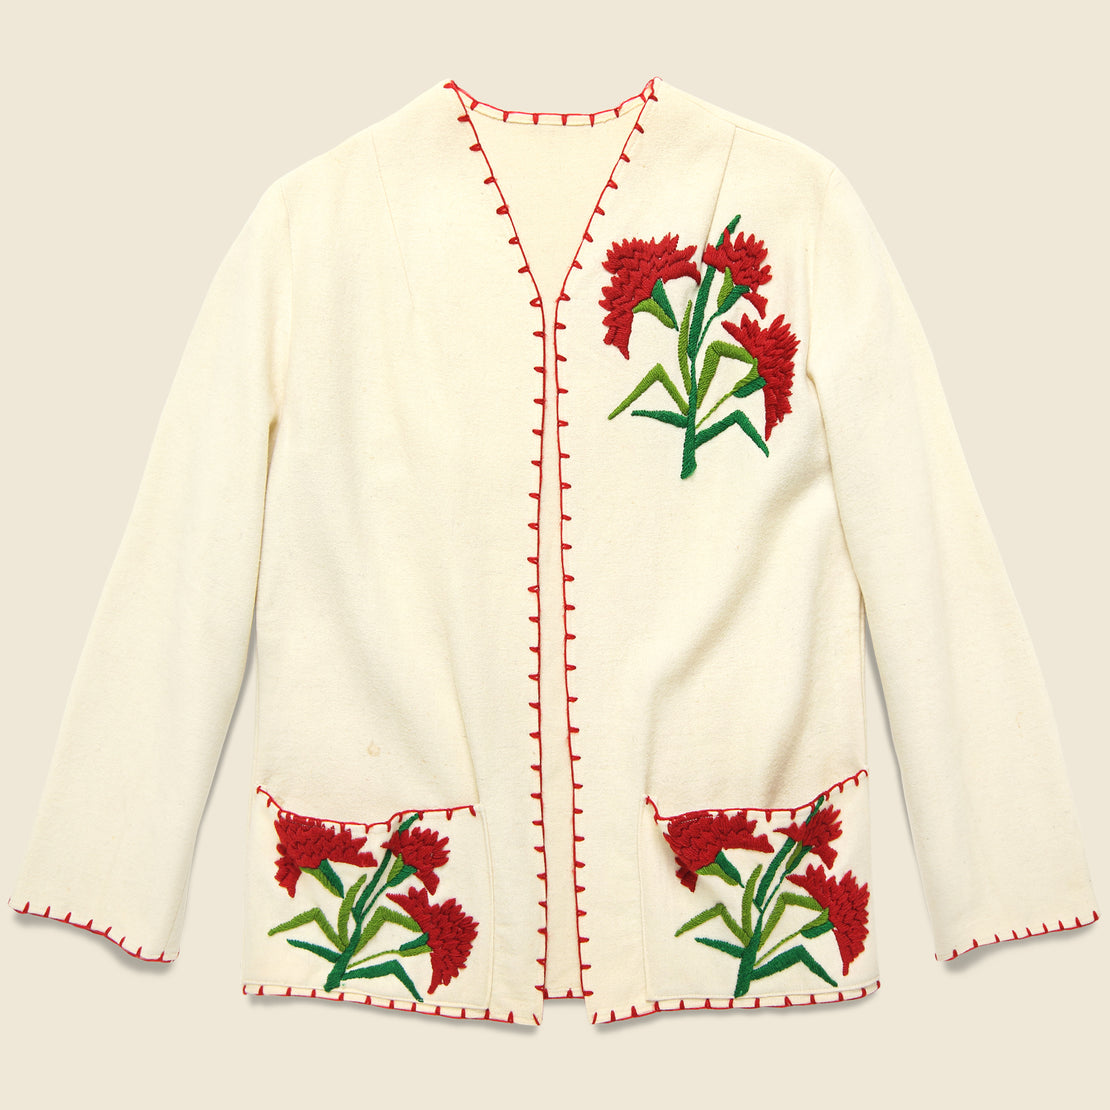 Vintage Floral Embroidered Wool Jacket - Cream/Red